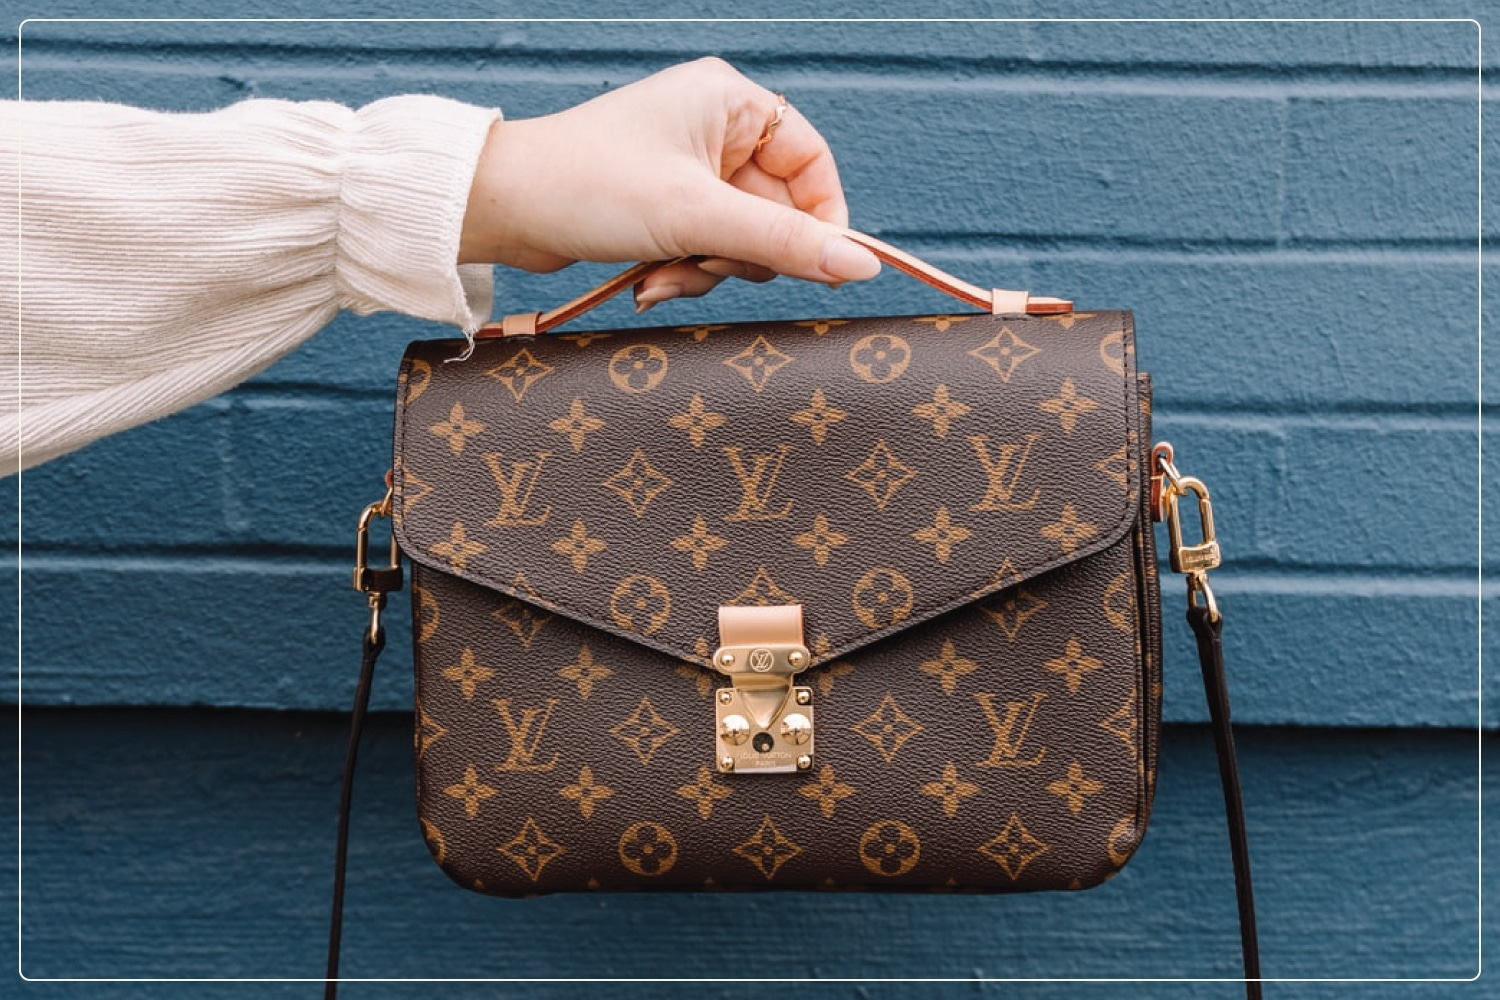 woman's hand holding out louis vuitton purse